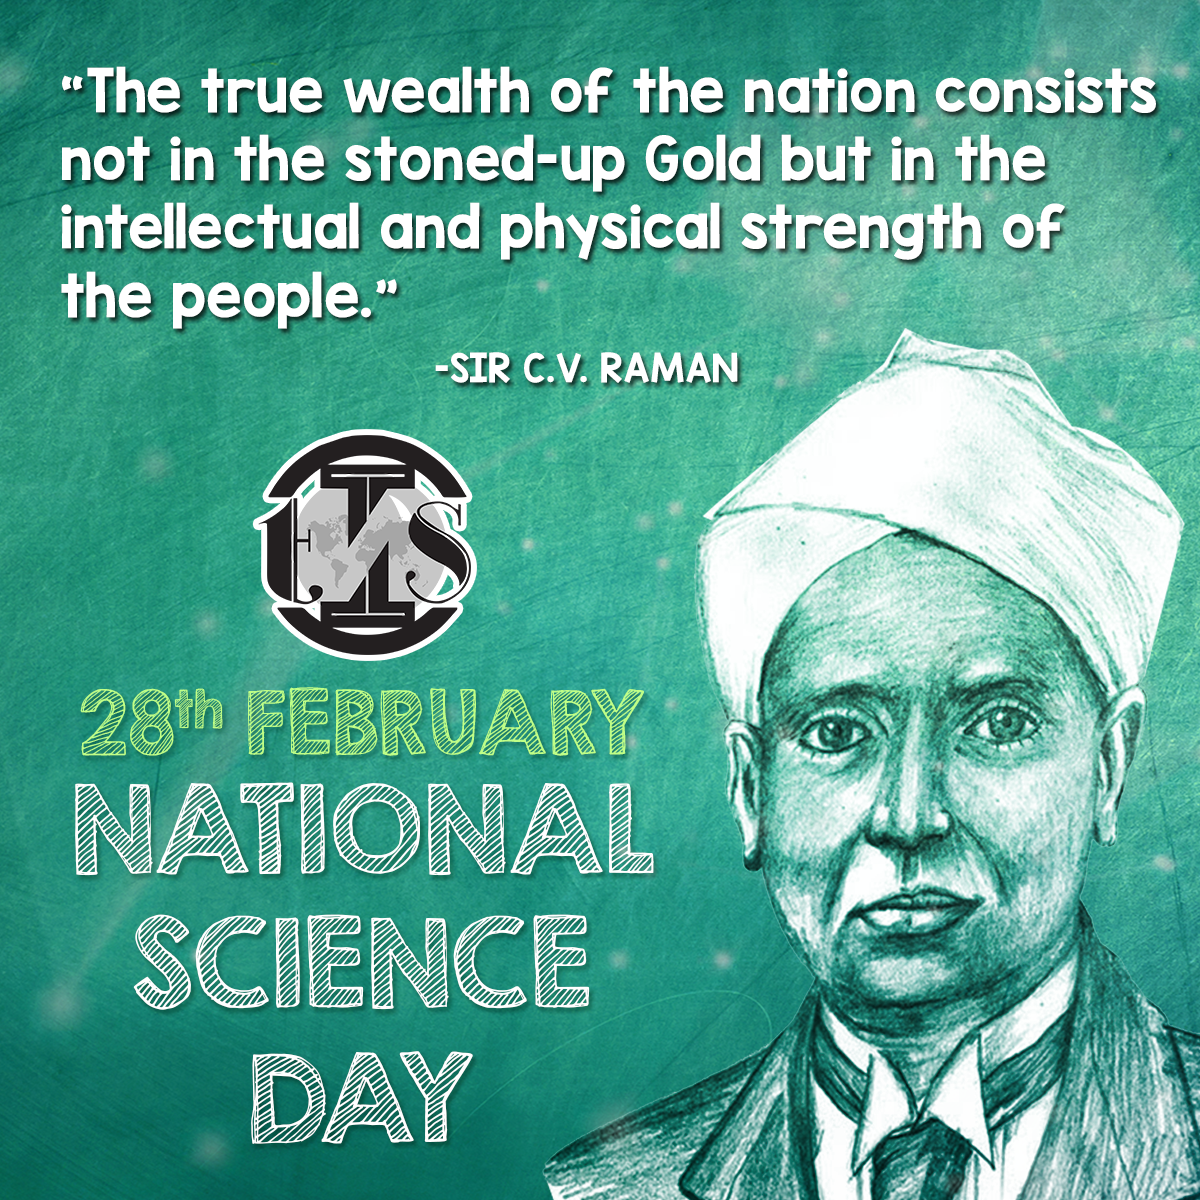 Wishing You Nationalscienceday Without Science Is Nothing